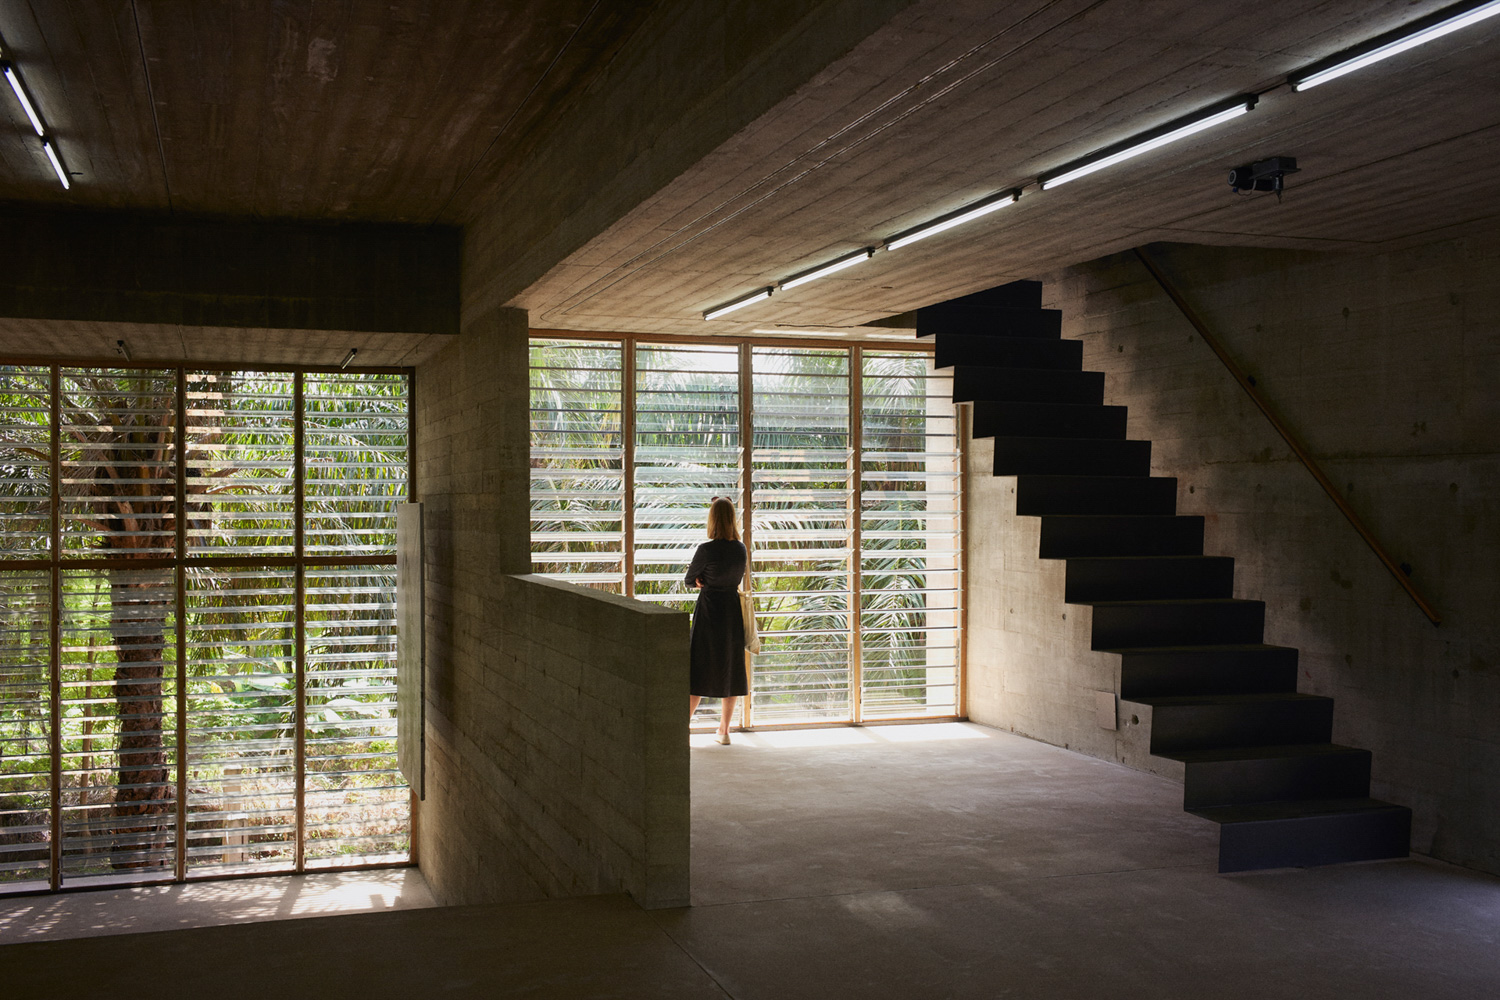 The split-level design creates a variety of spaces to be used by artists and curators Julien Lanoo